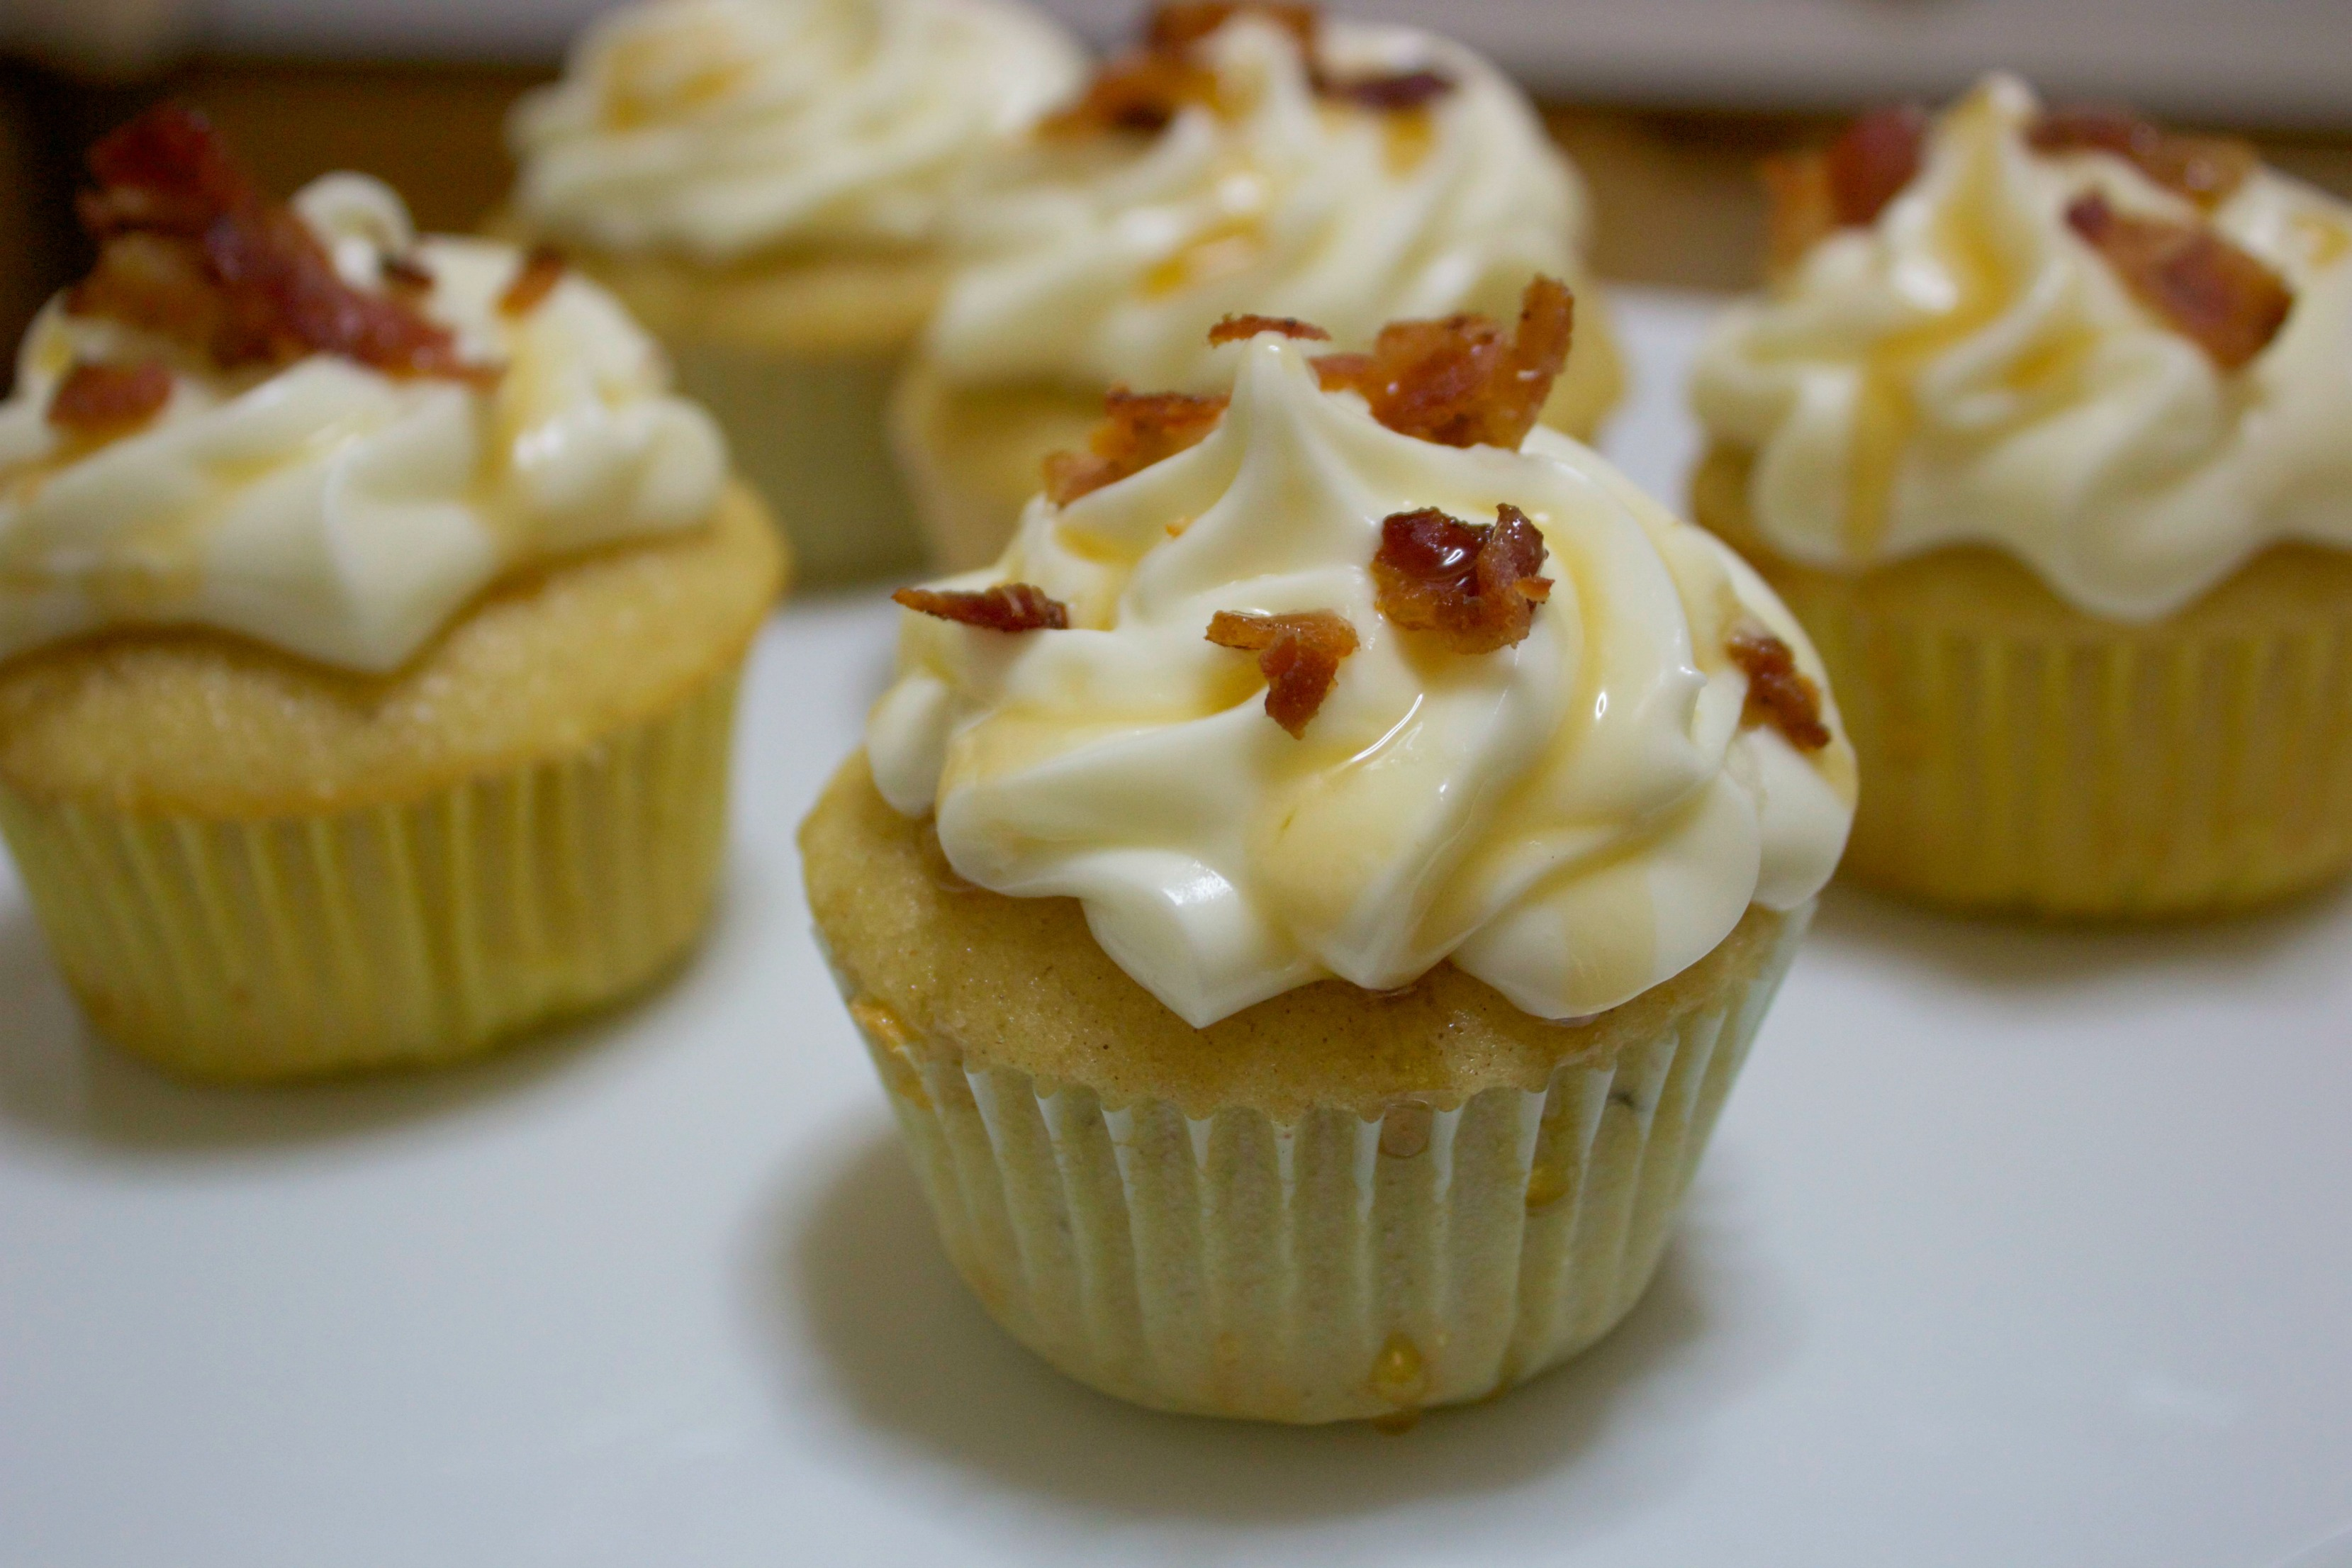 Sweet and savory yellow cupcakes with a cream cheese frosting, syrup drizzle, and bacon bits